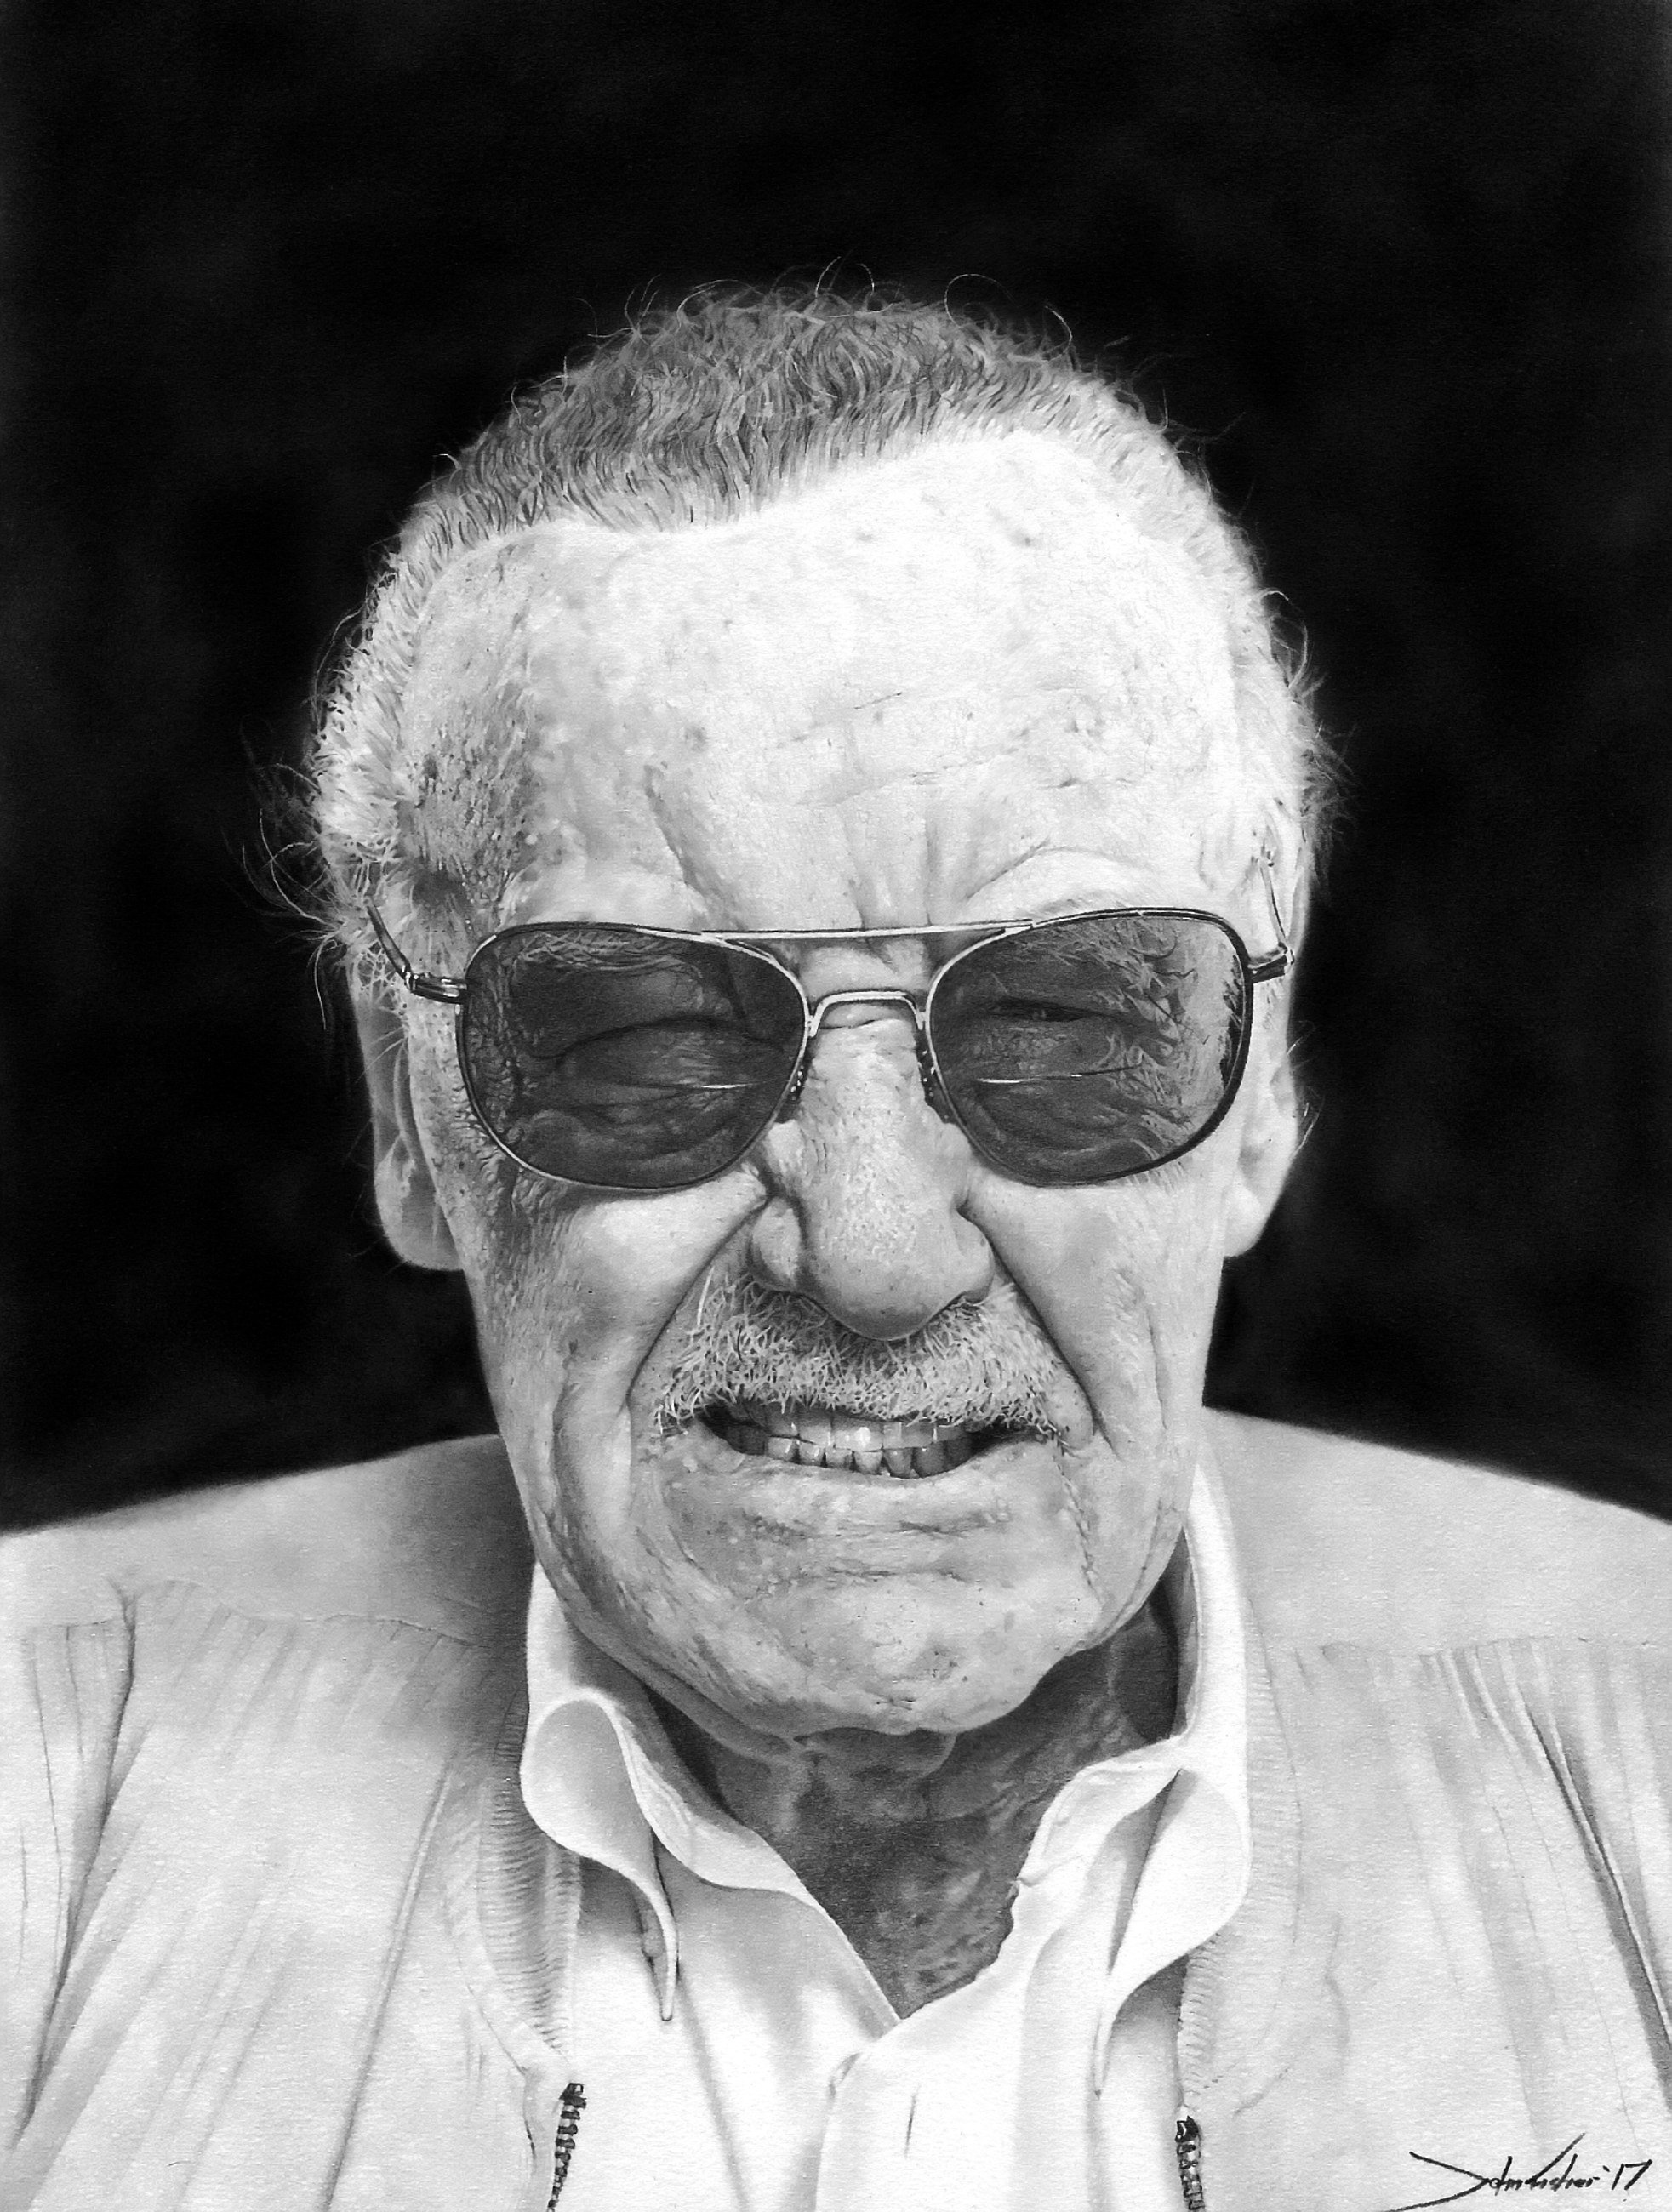 John draws celebrities as well as pets and people - here's Marvel legend Stan Lee. Credit: SWNS